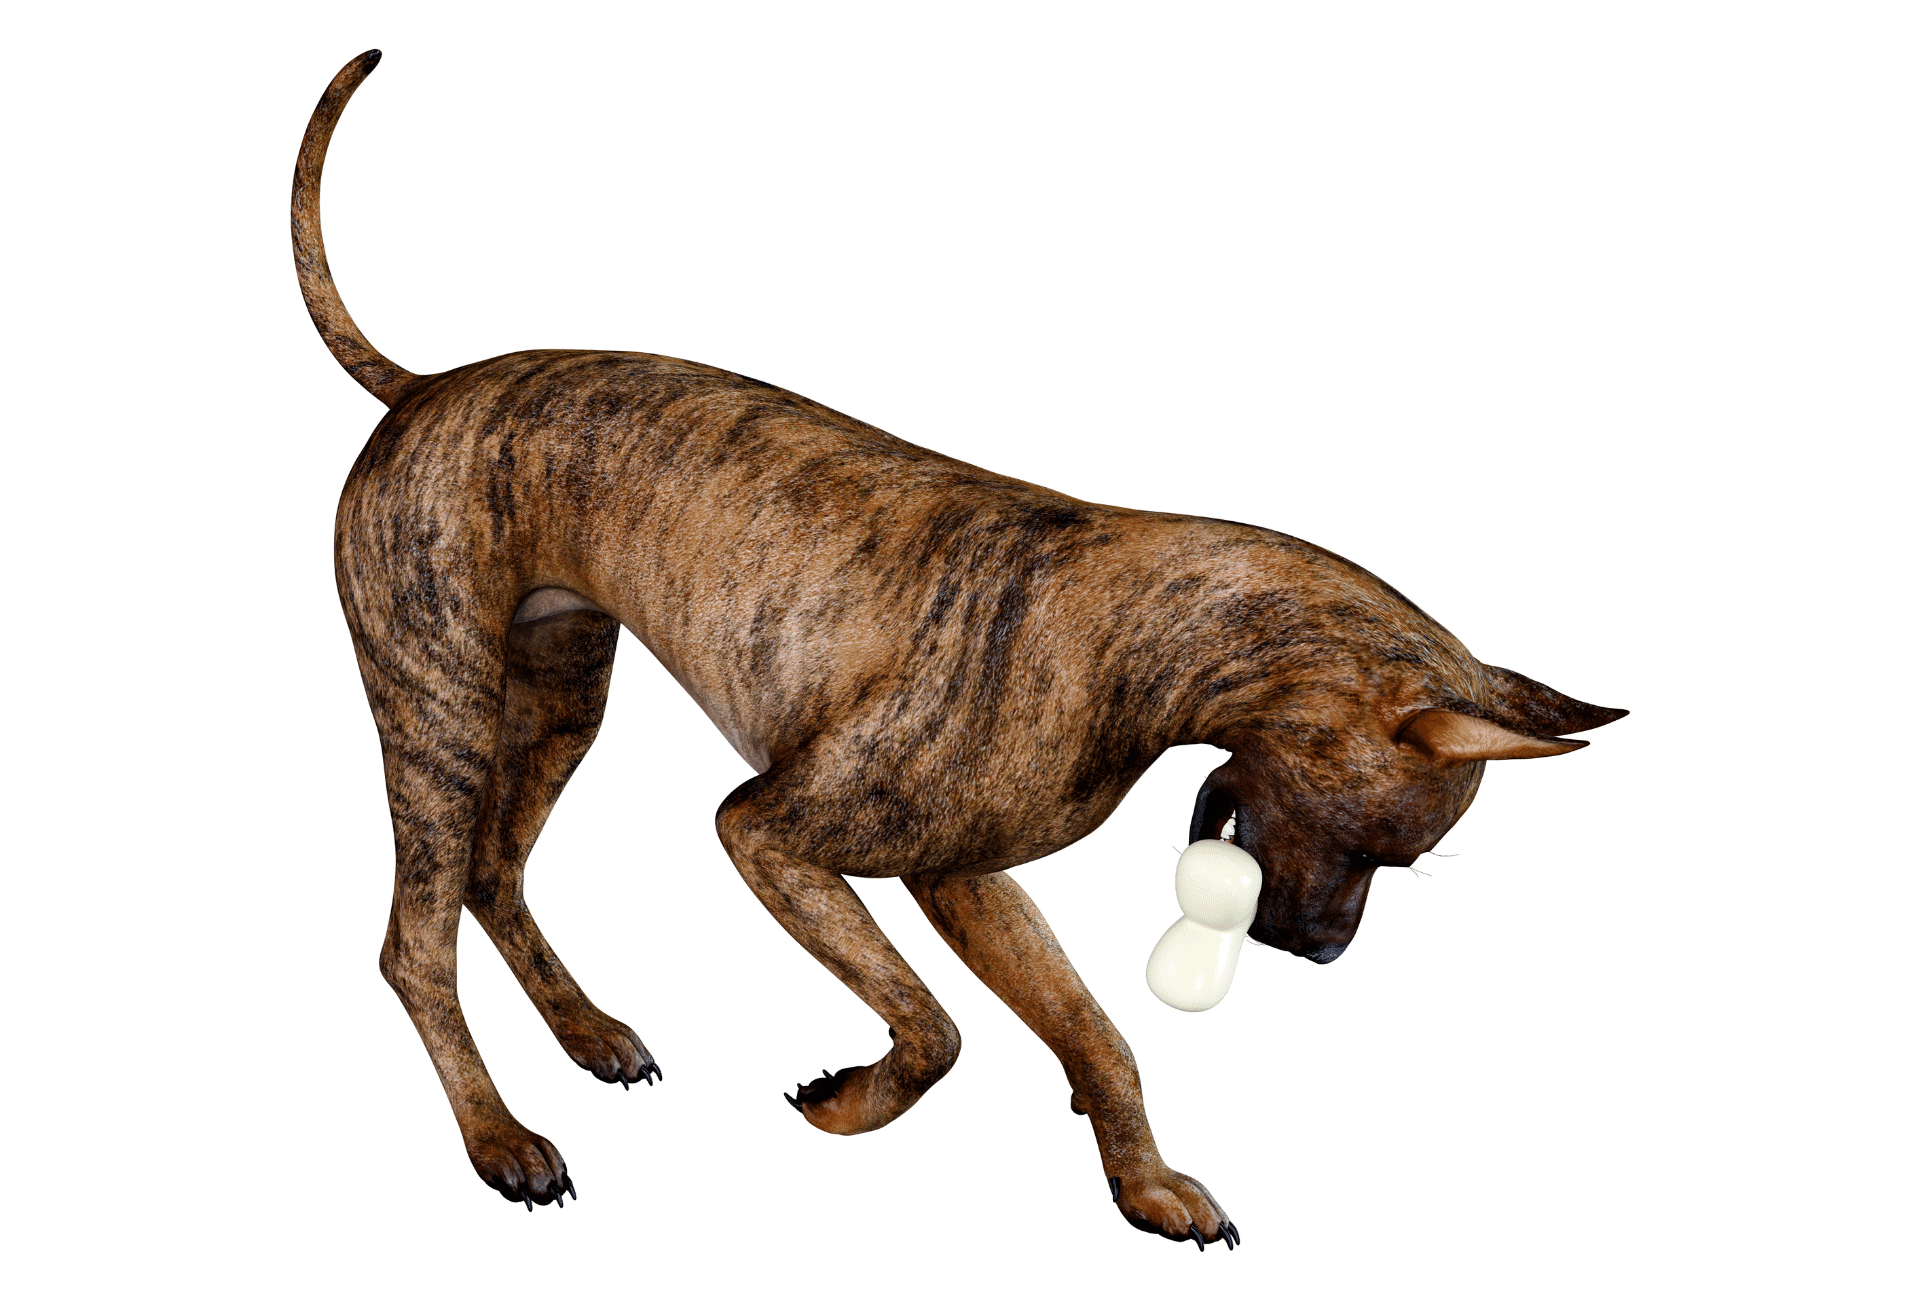 Brindle Great Dane with toy in mouth in front of white background.